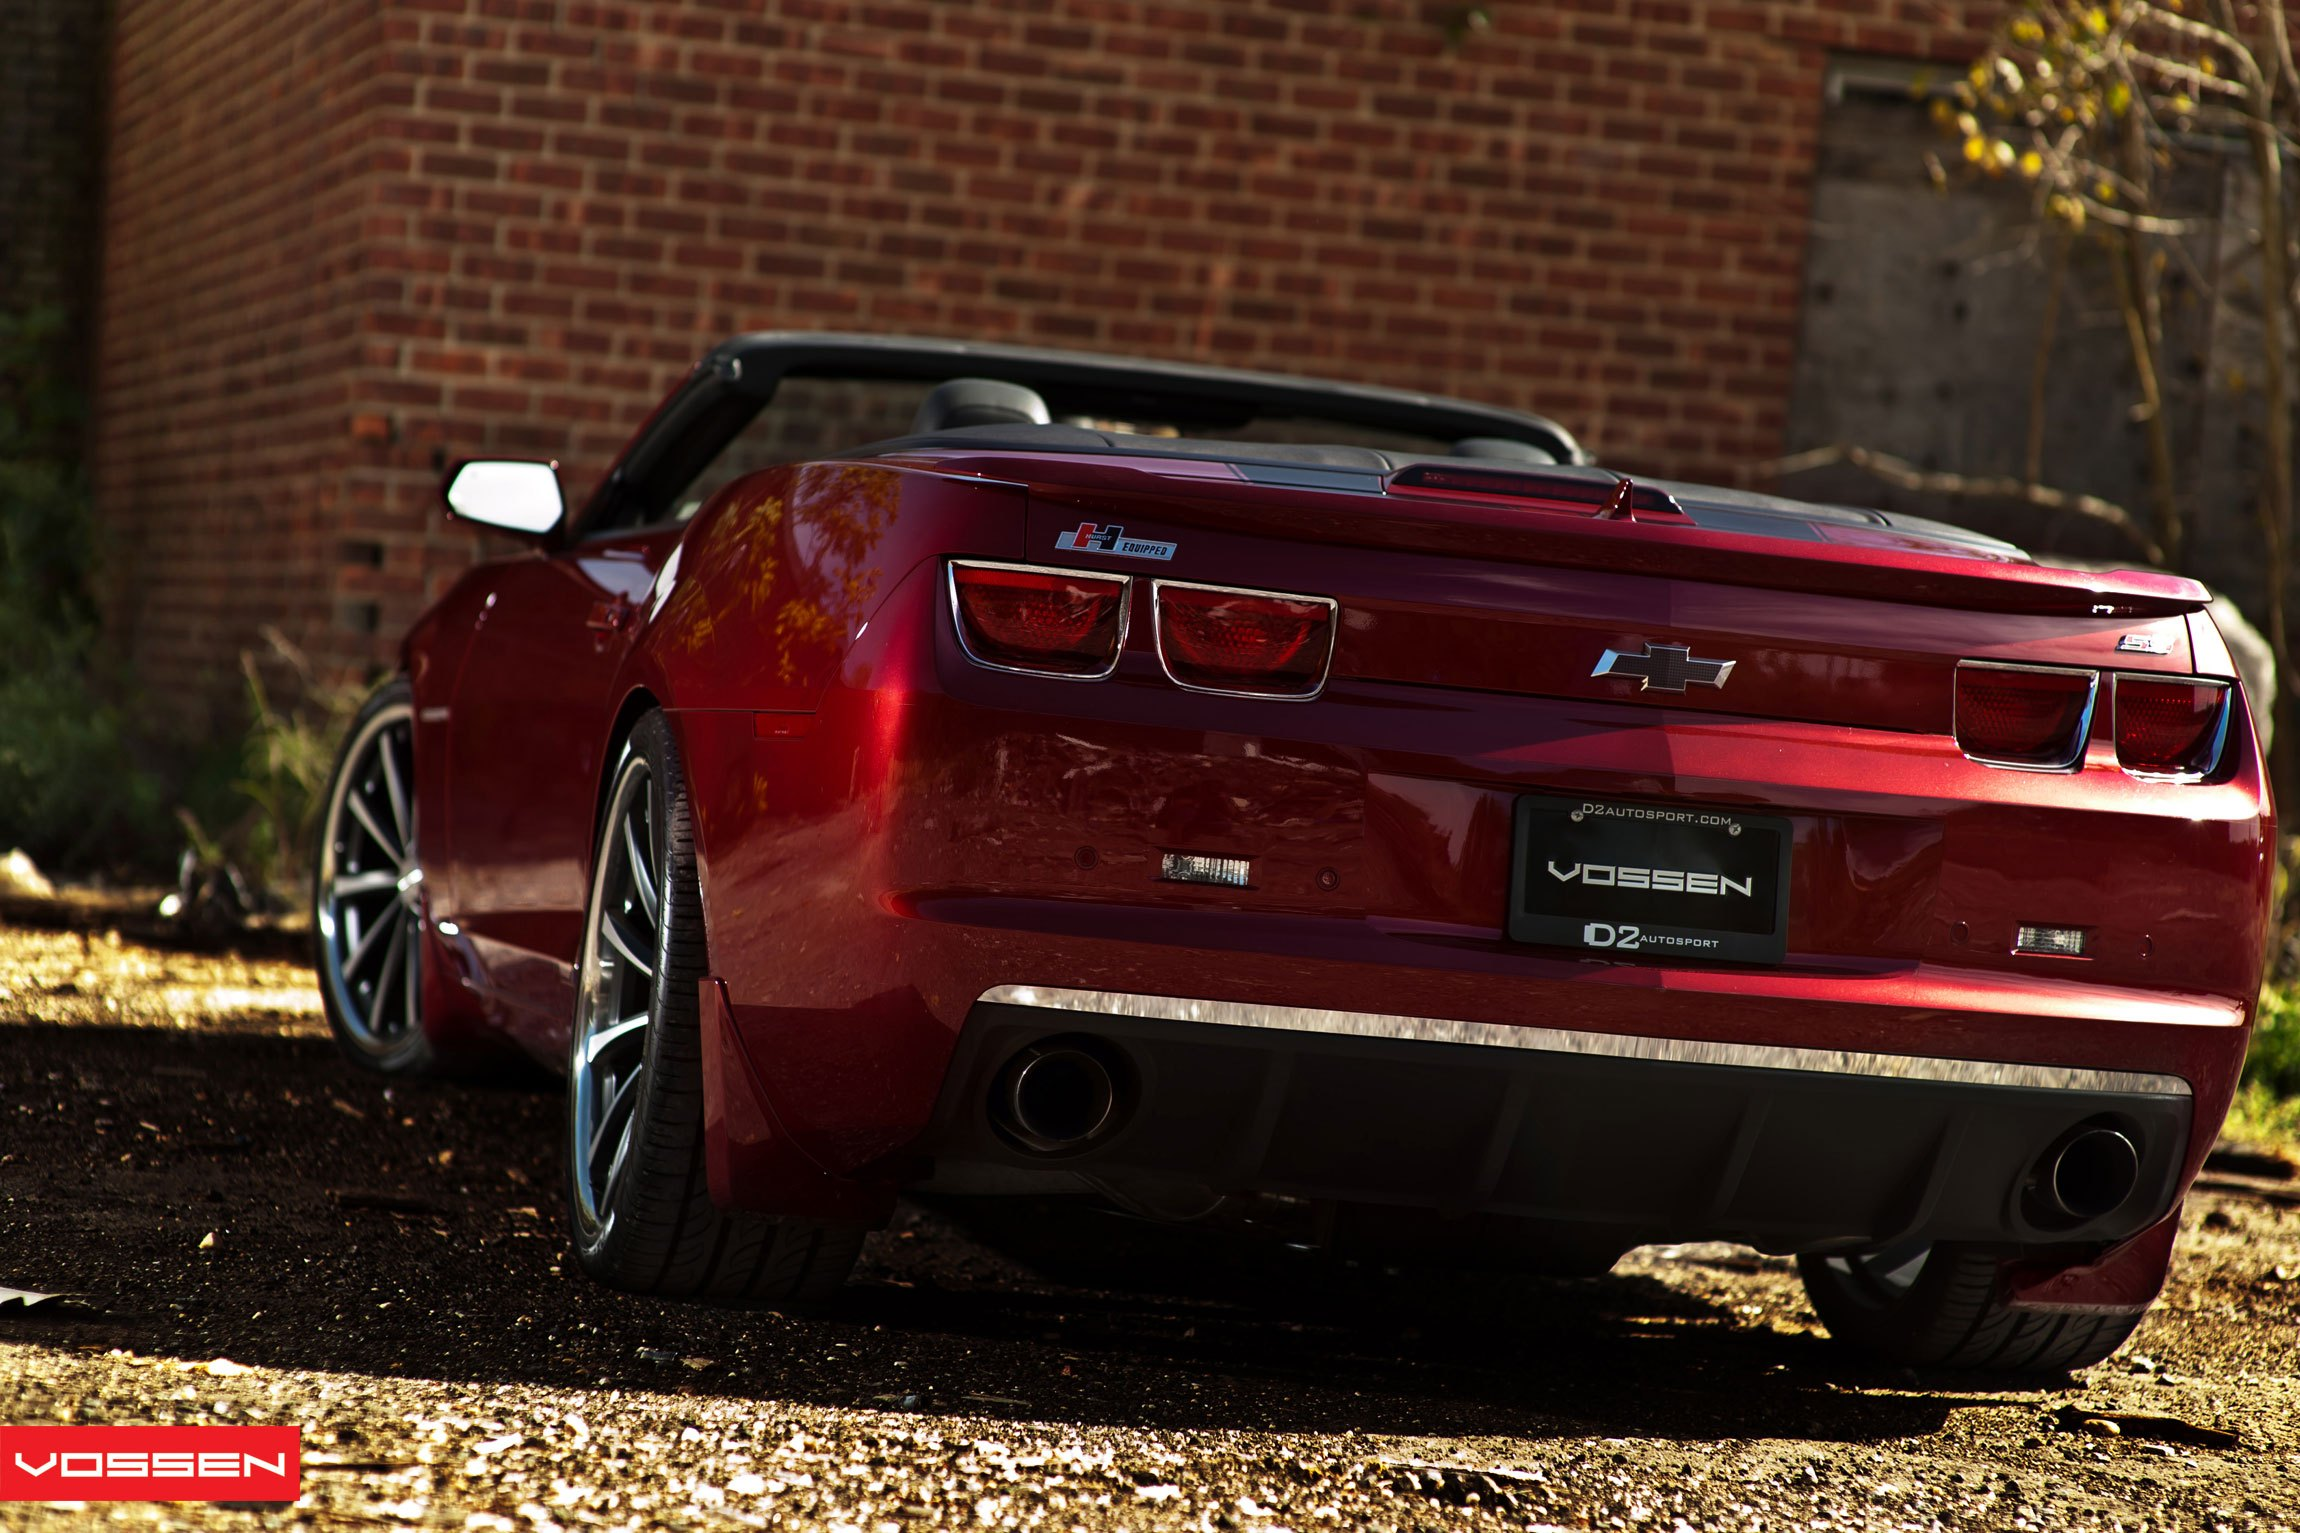 Custom Rear Diffuser On Red Convertible Chevy Camaro Photo By Vossen